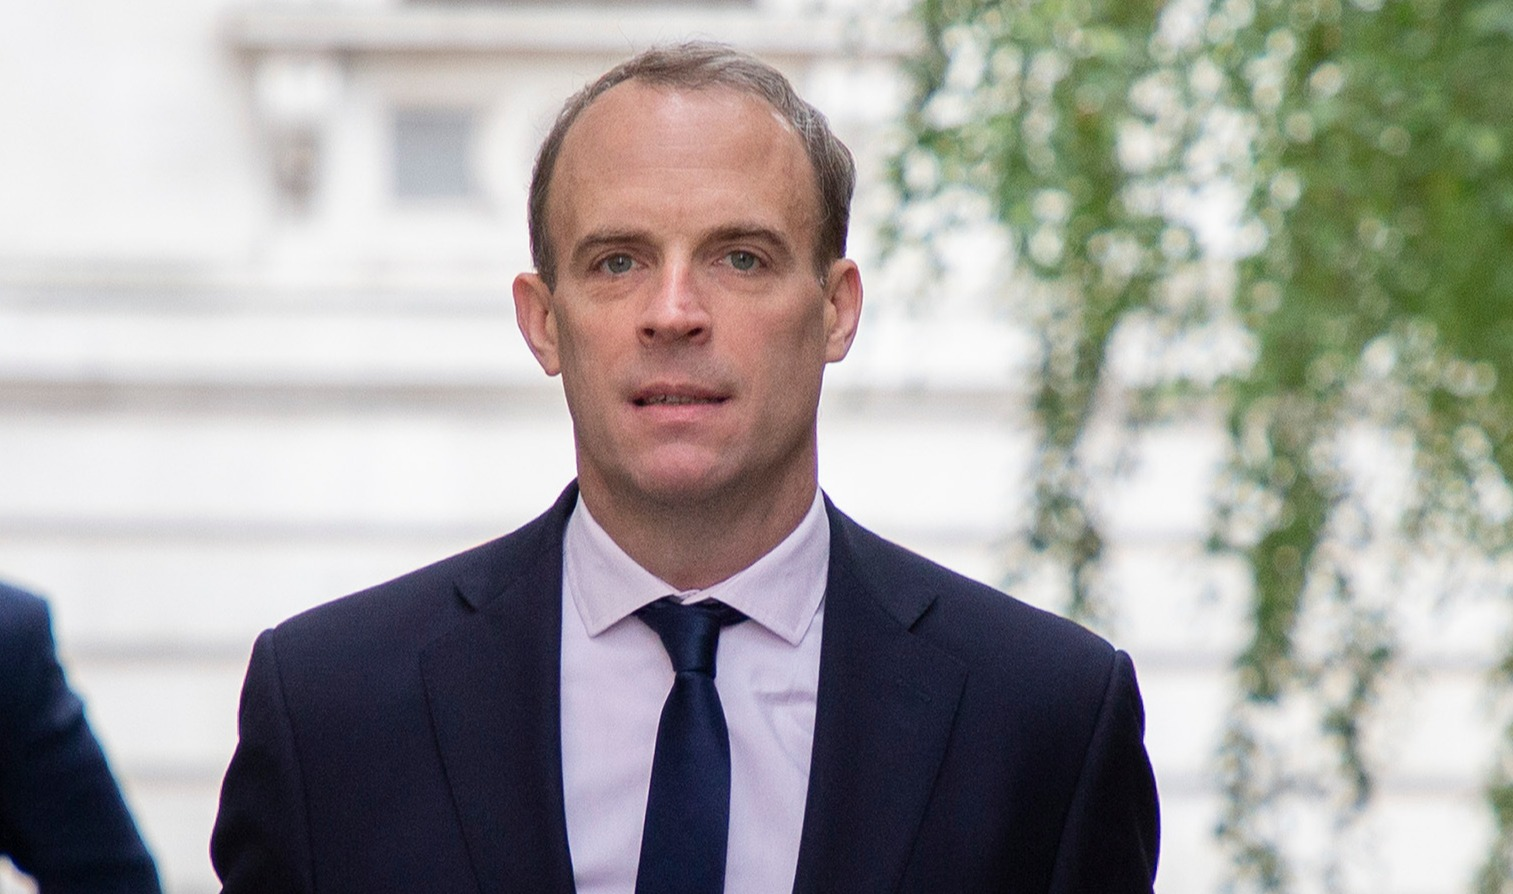 Dominic Raab blasts Russia over fake news claims Oxford Covid vaccine could turn people into monkeys